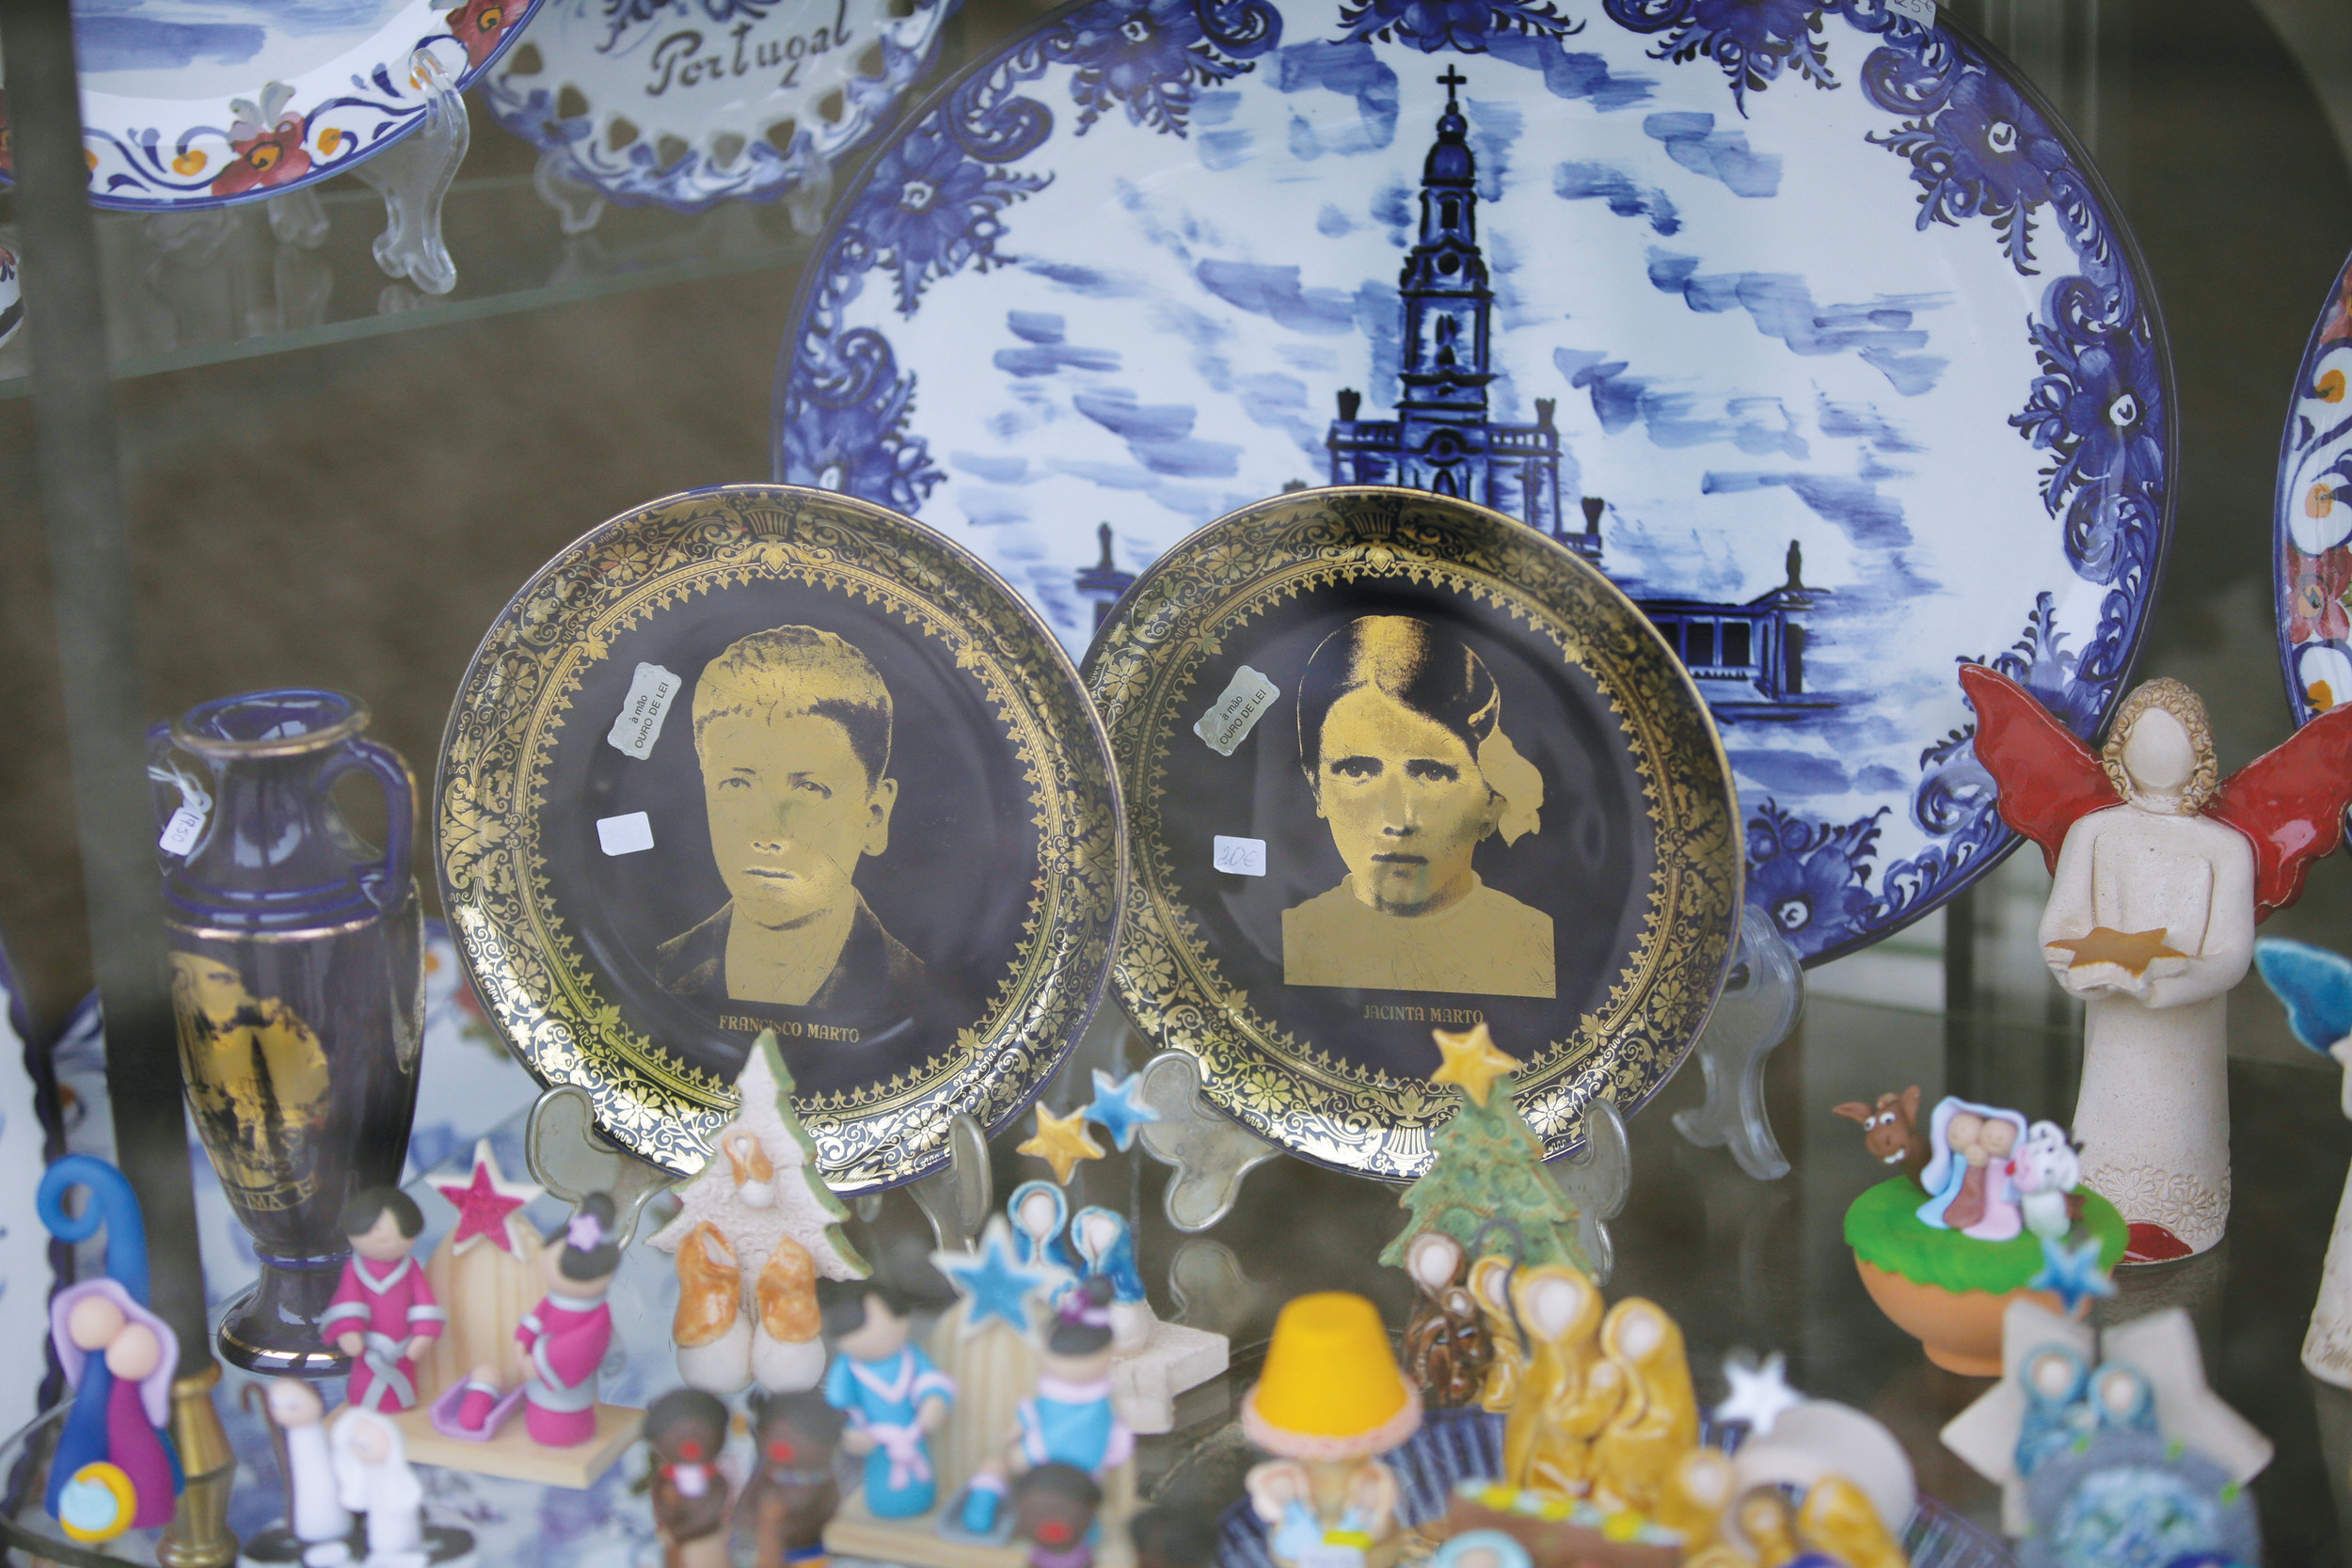 China plates with images of Francisco and Jacinta Marto are displayed for sale on May 4 in a shop window in Fatima, Portugal. Pope Francis visited the Fatima shrine on May 12 and 13 to canonize Francisco and Jacinta Marto, two Portuguese shepherd children who say they saw visions of the Virgin Mary 100 years ago.